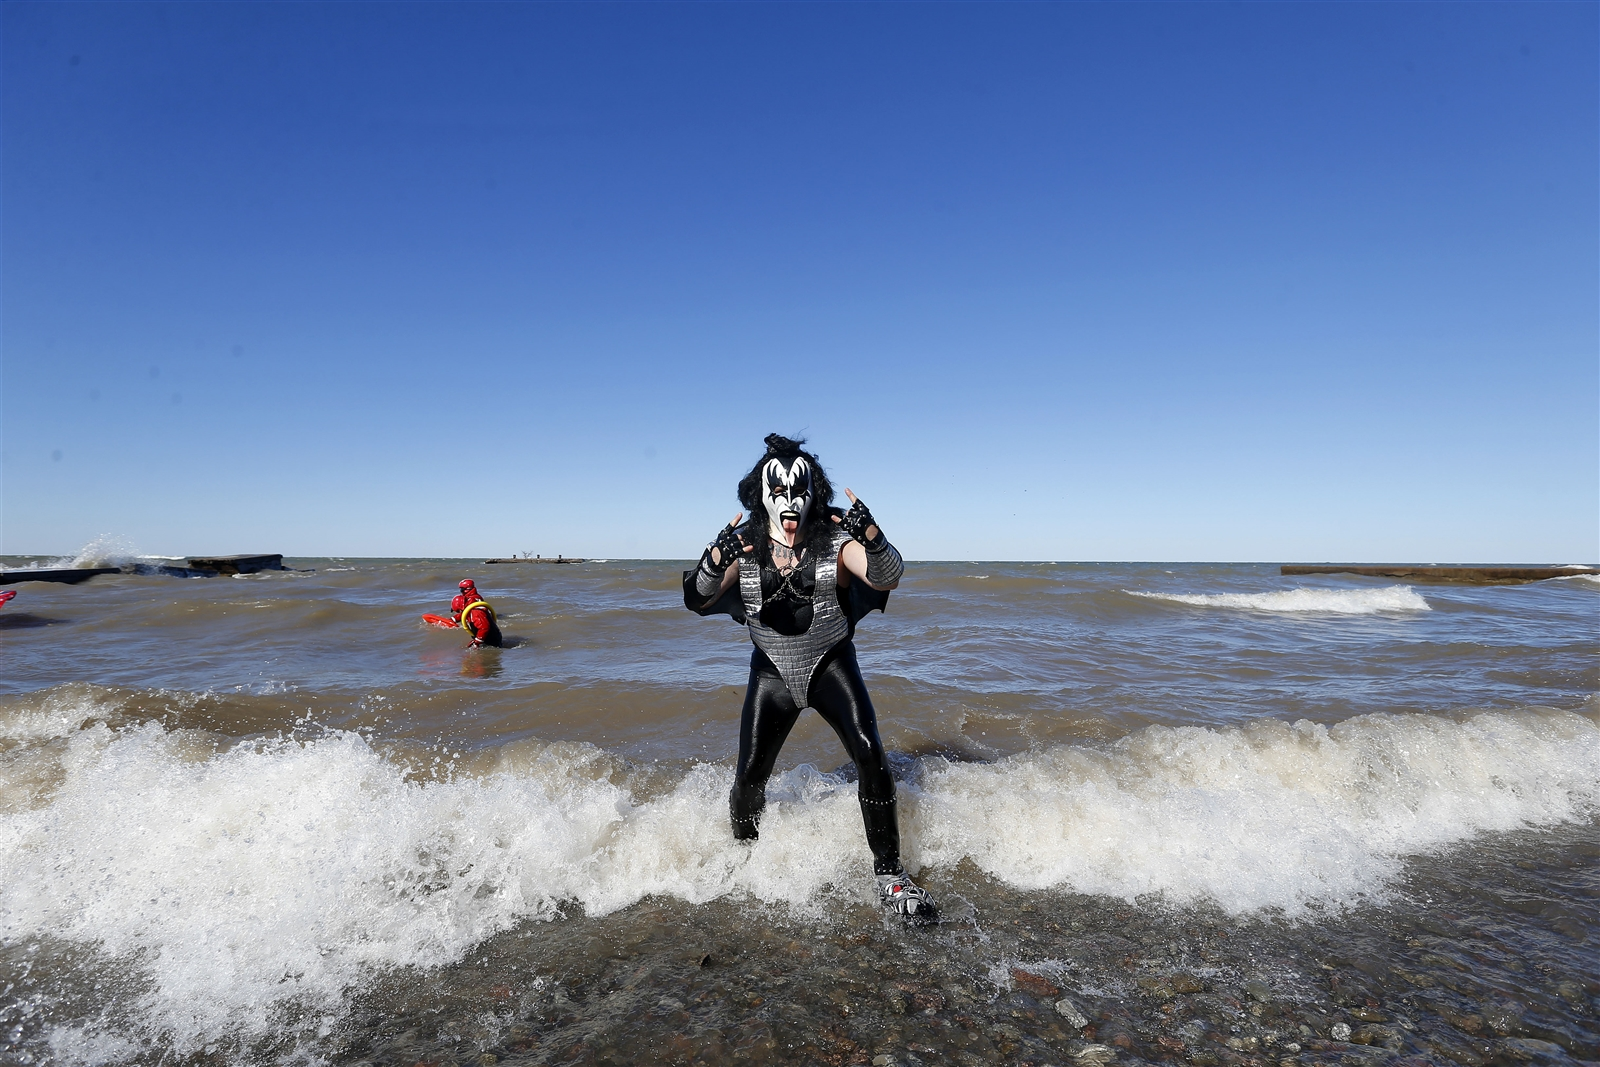 Dressed as Gene Simmons from the rock band Kiss, Terry Broeker of Lewiston, takes to the frigid waters of Lake Ontario for the 49th Annual Polar Bear Swim For Sight, sponsored by the Olcott Lions Club, at Olcott Beach on Sunday, March 4, 2018.